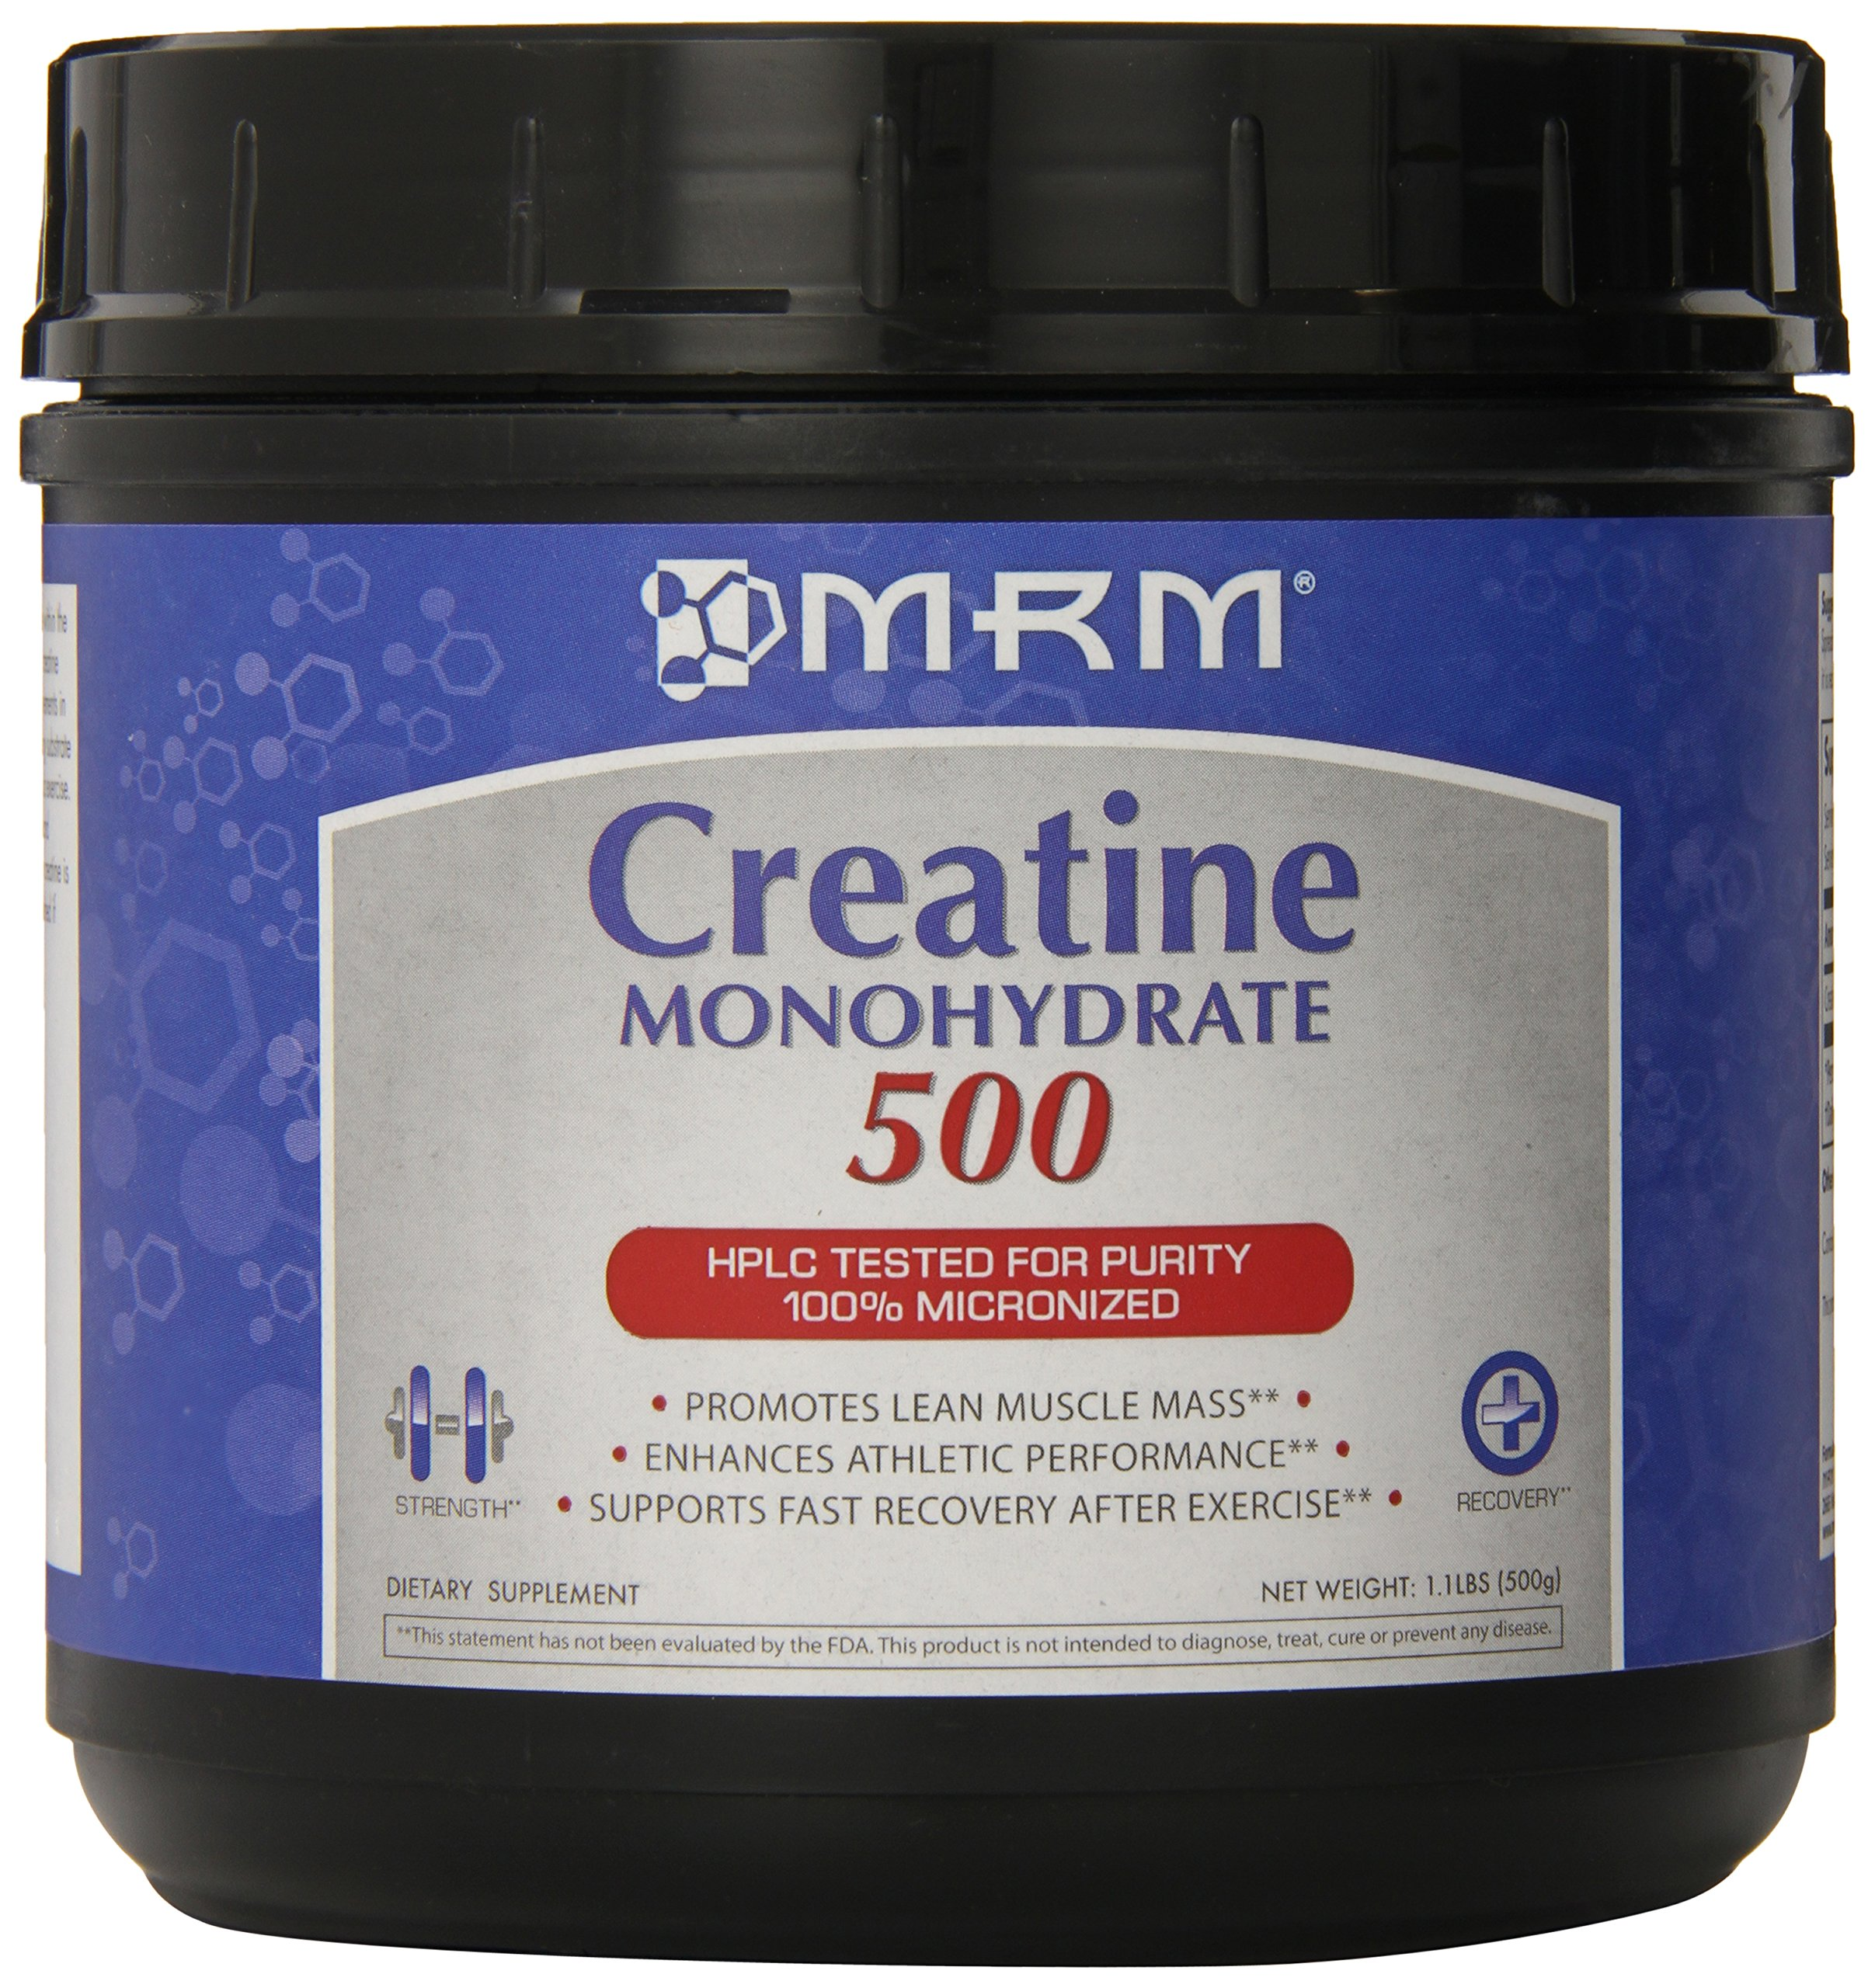 MRM - Creatine Monohydrate 500, Enhances Athletic Performance & Supports Fast Post-Exercise Recovery, Enhances Lean Muscle Mass & Strength (1.1 lbs)